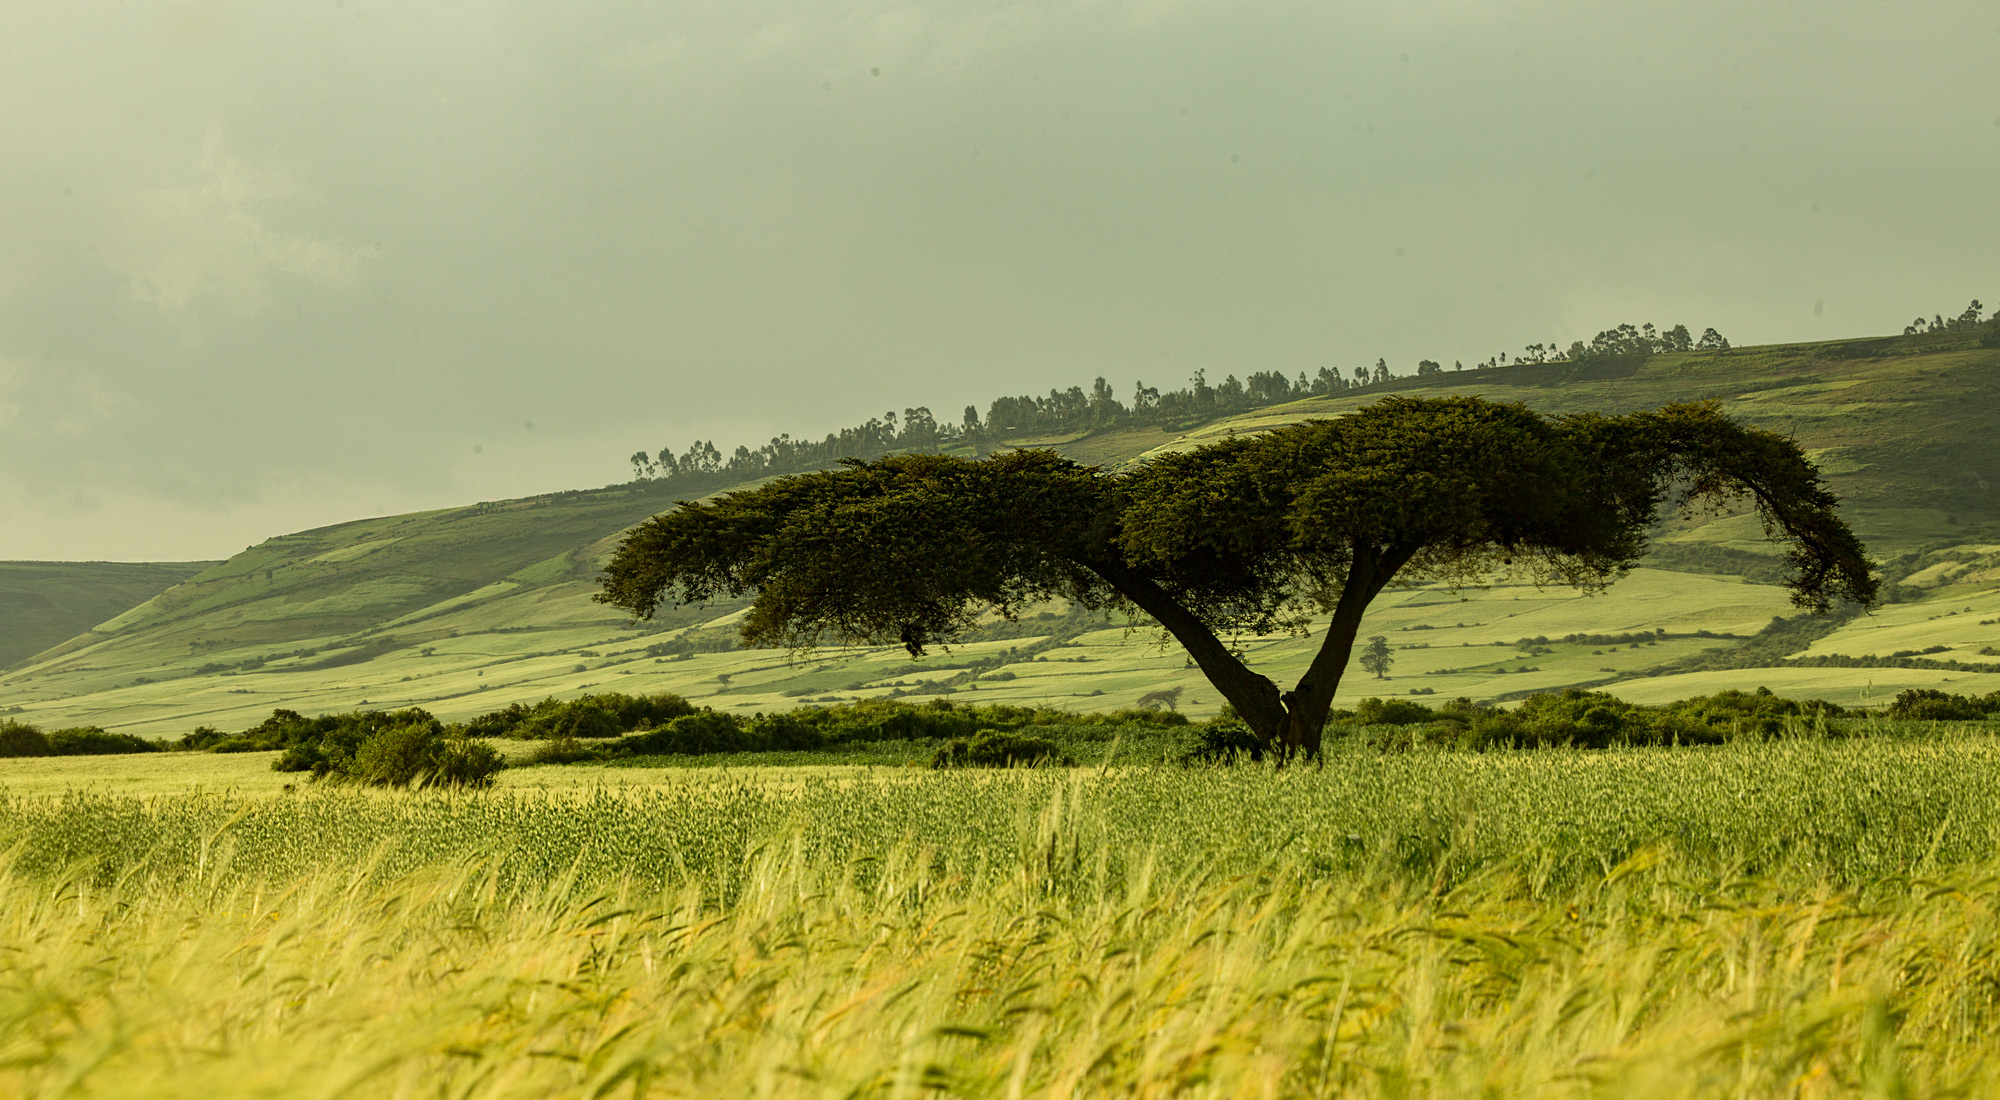 A stunning capture of Ethiopia's landscape with wheat fields © Christian Boix